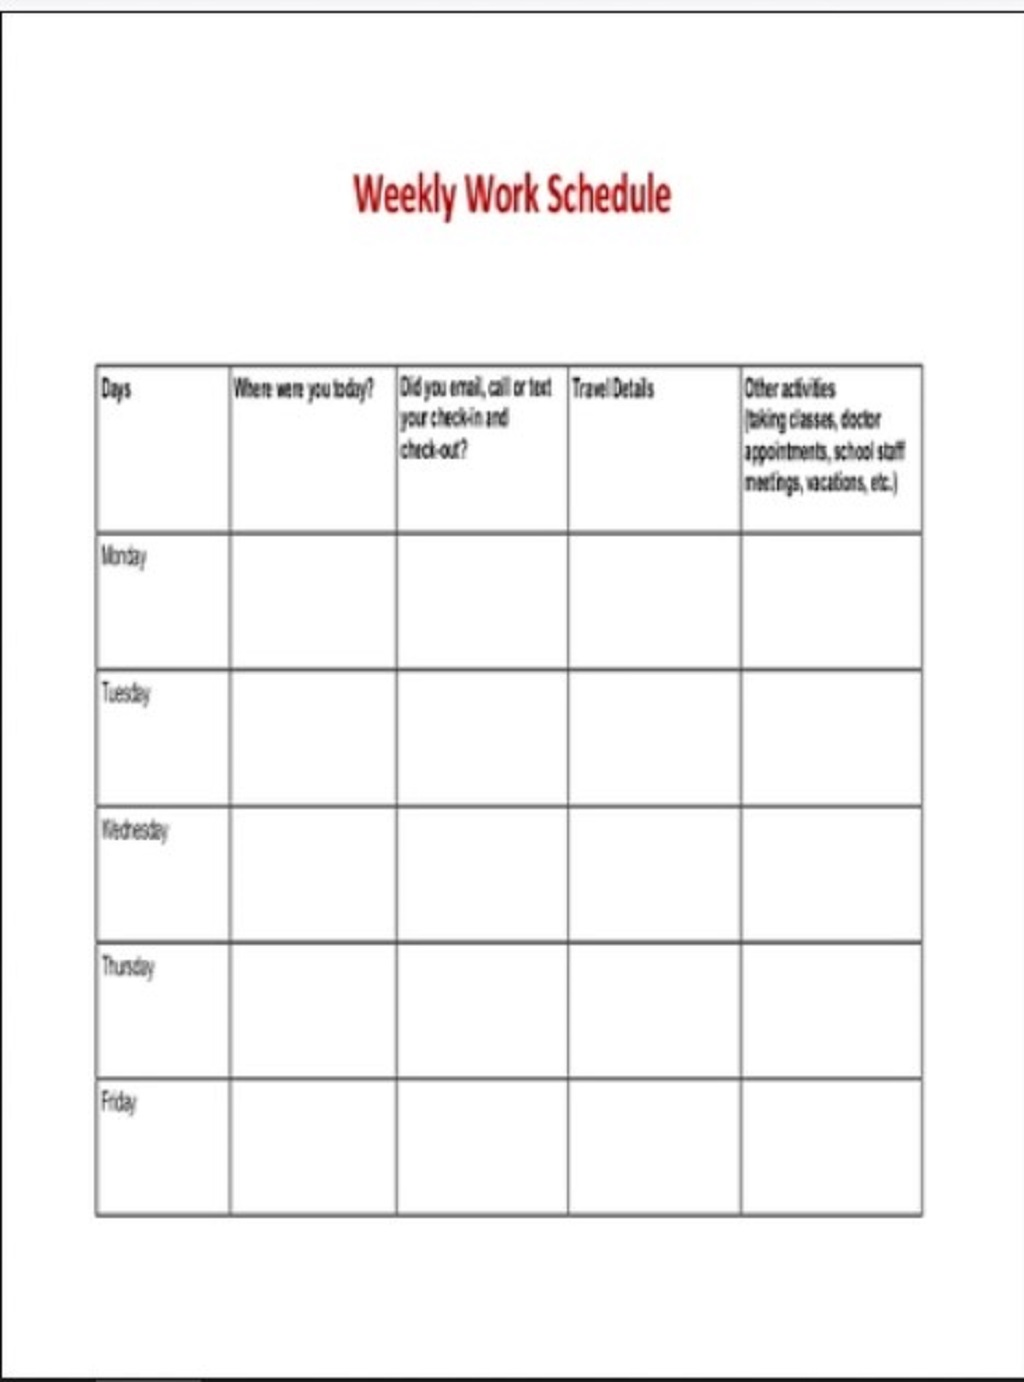 Weekly Work Schedule Sample Template Planner Printable Google Sheets Searches Related To Excel  Samples Large